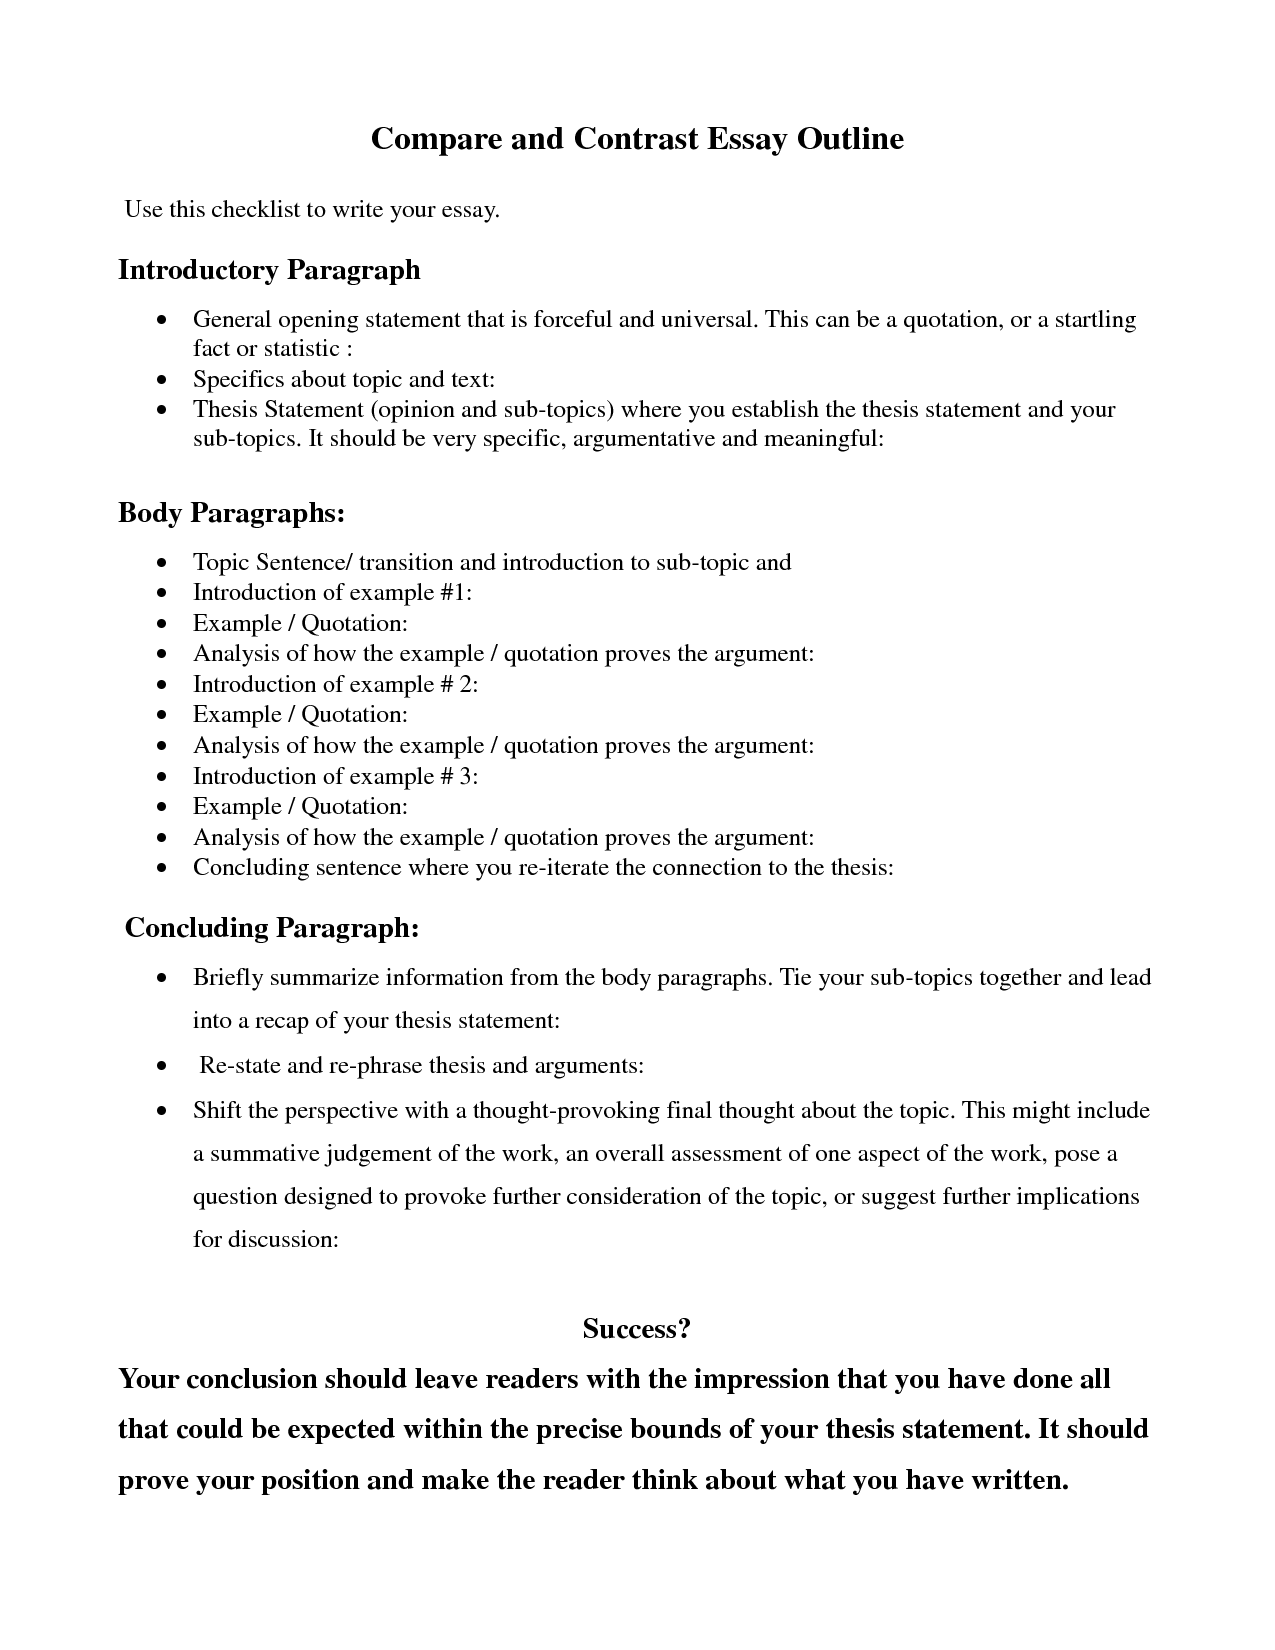 Topic For English Essay Comparecontrast Essay Outline  Google Search High School Reflective Essay Examples also Romeo And Juliet Essay Thesis Comparecontrast Essay Outline  Google Search  Education  Thesis  English Essay About Environment